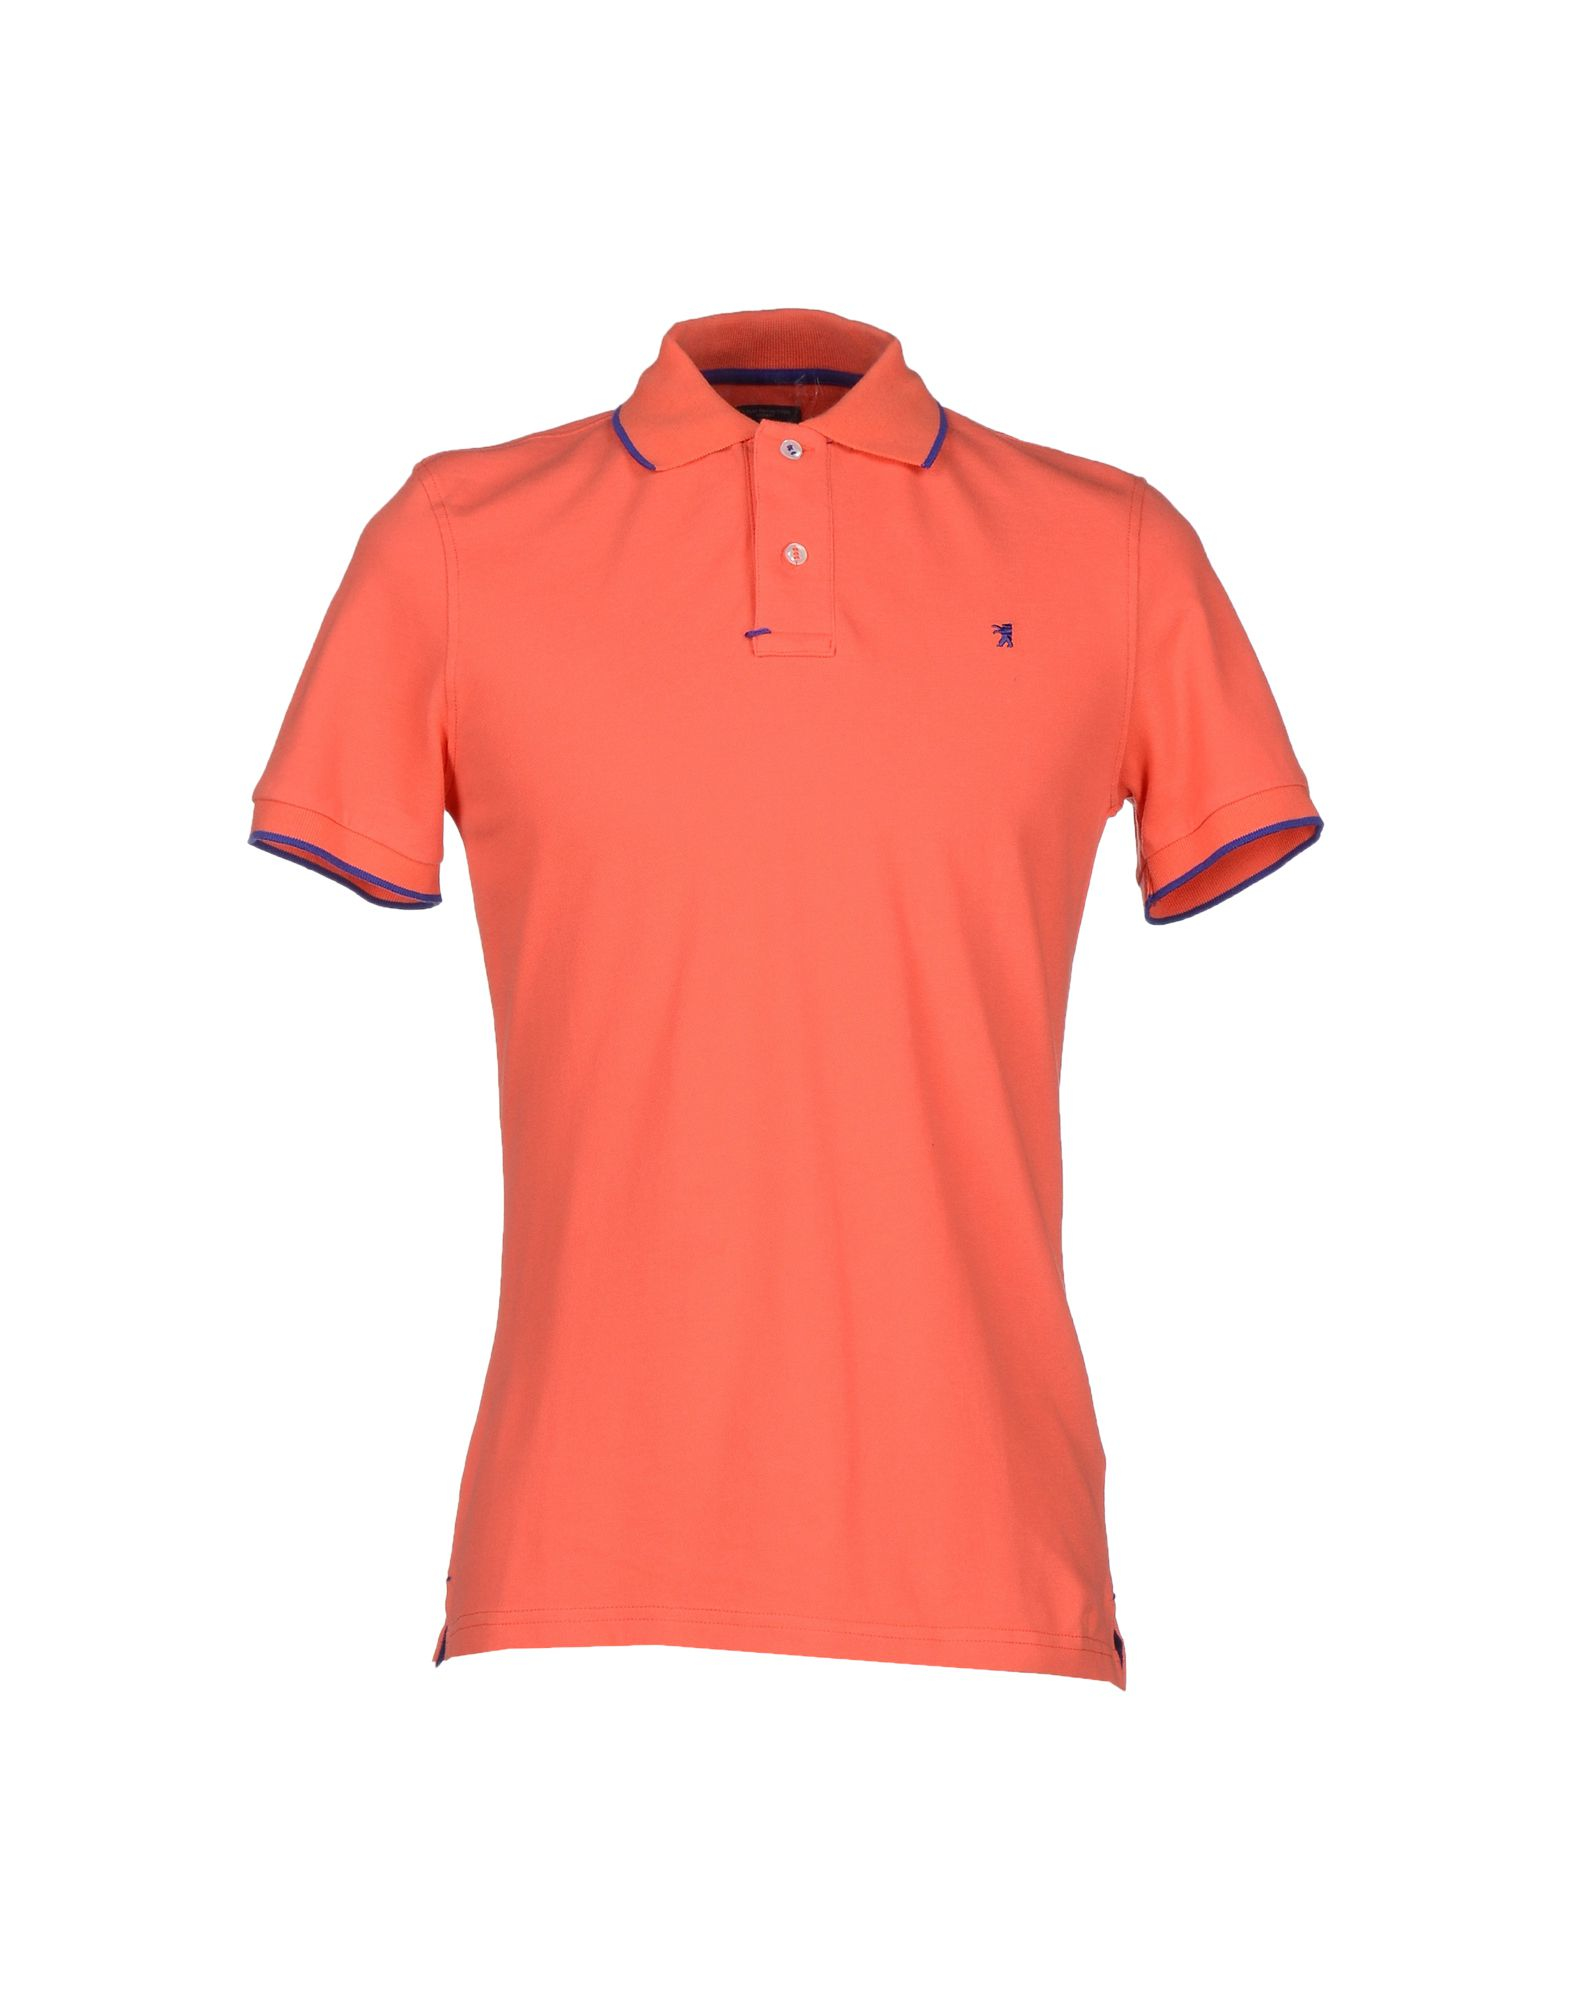 Lyst jaggy polo shirt in orange for men for Mens orange polo shirt